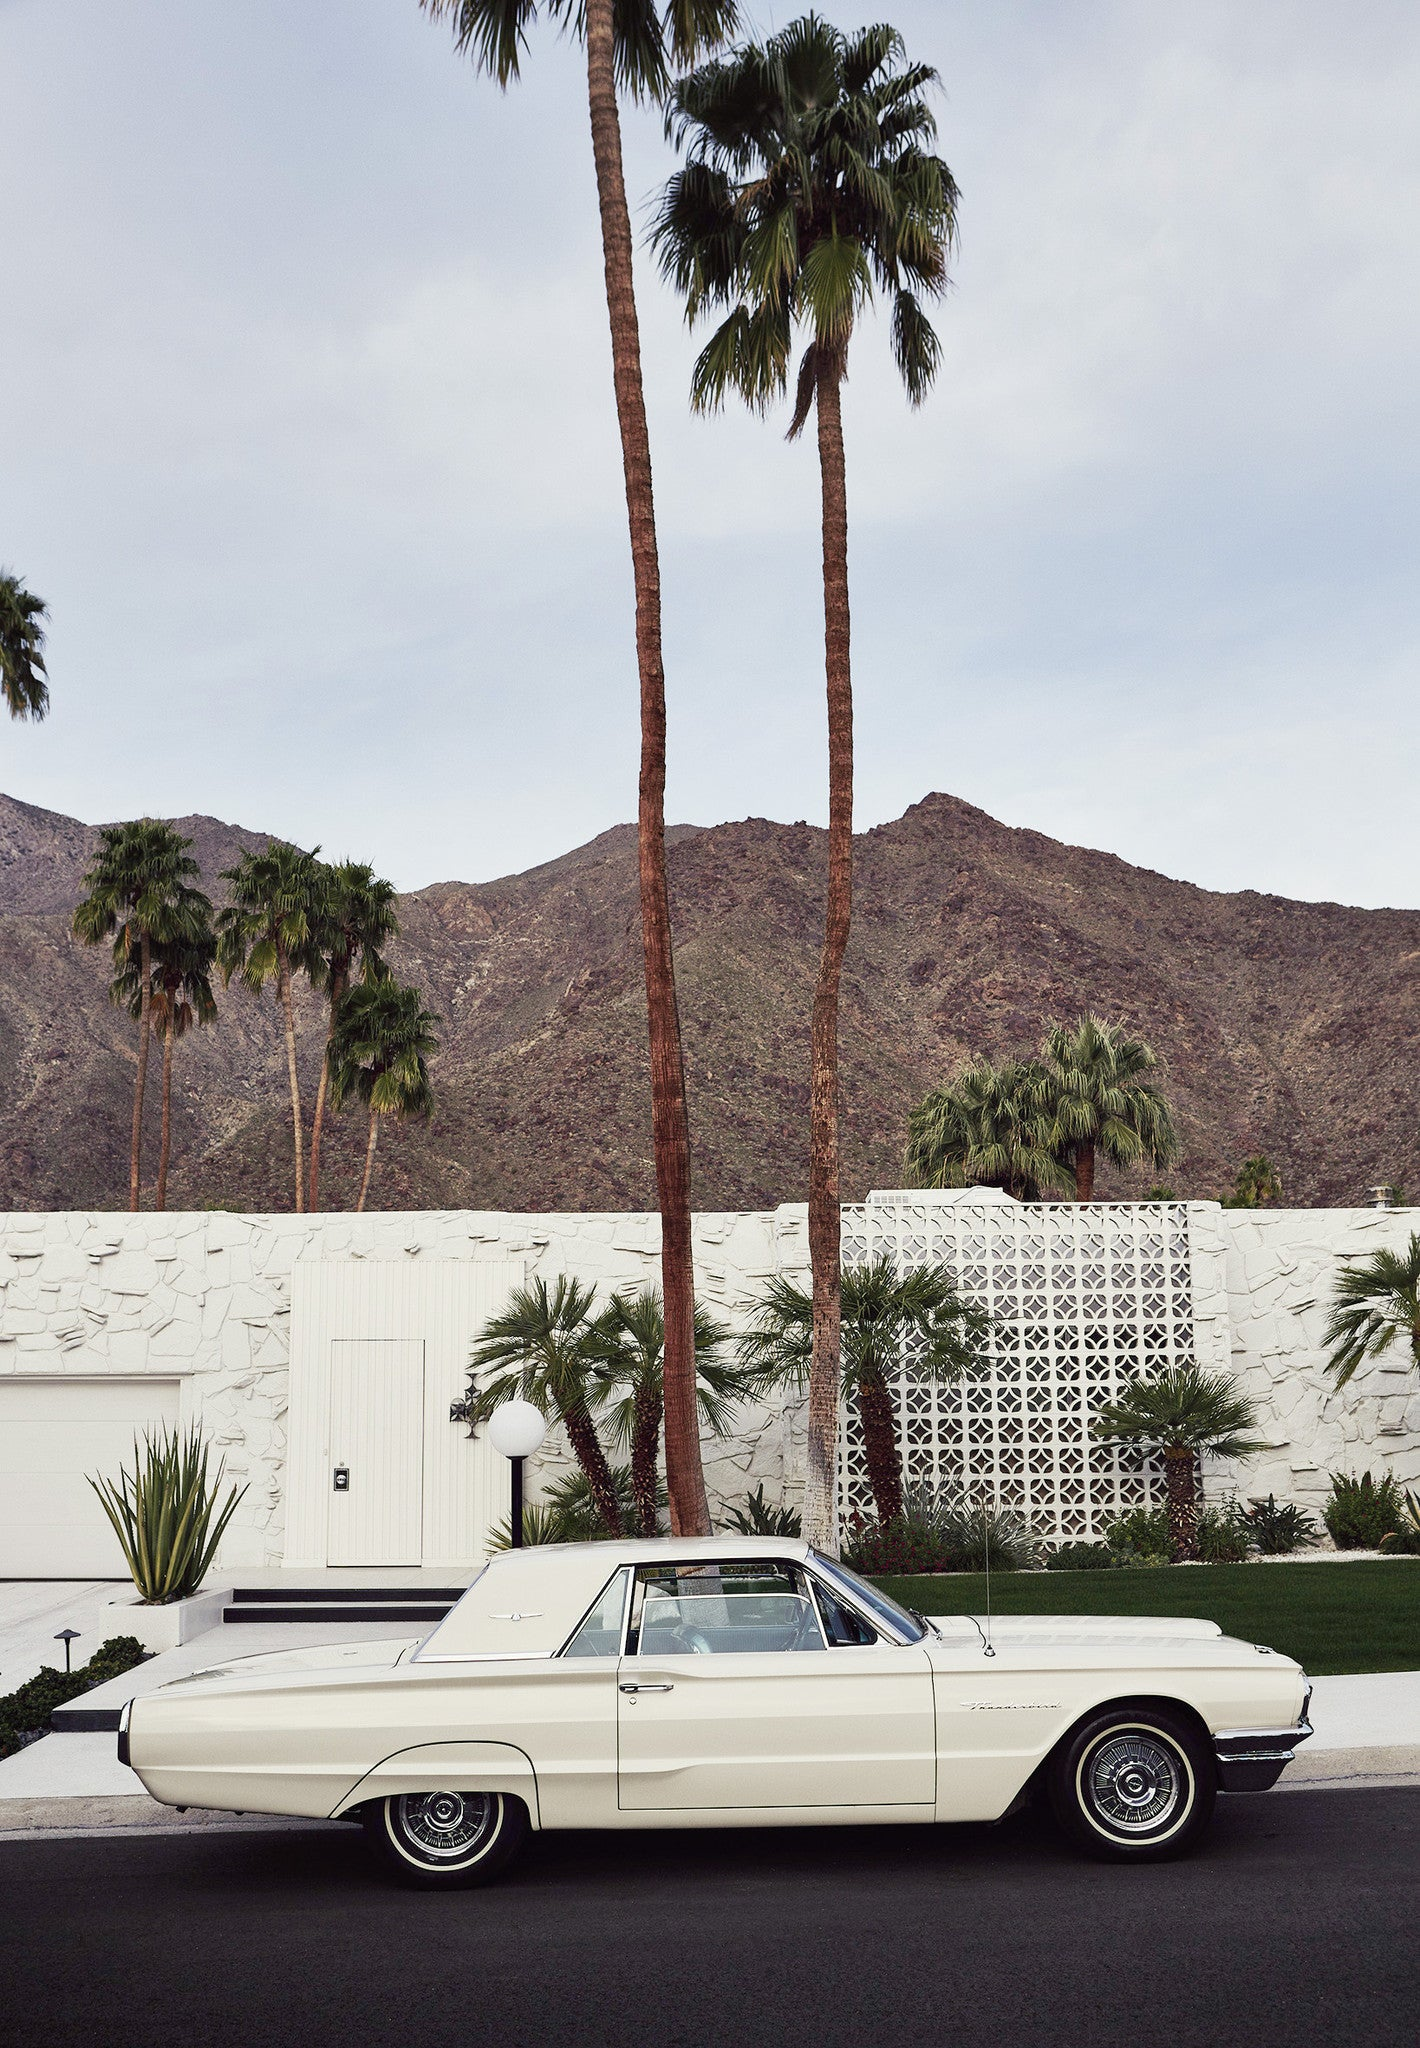 Thunderbird,Palm Springs